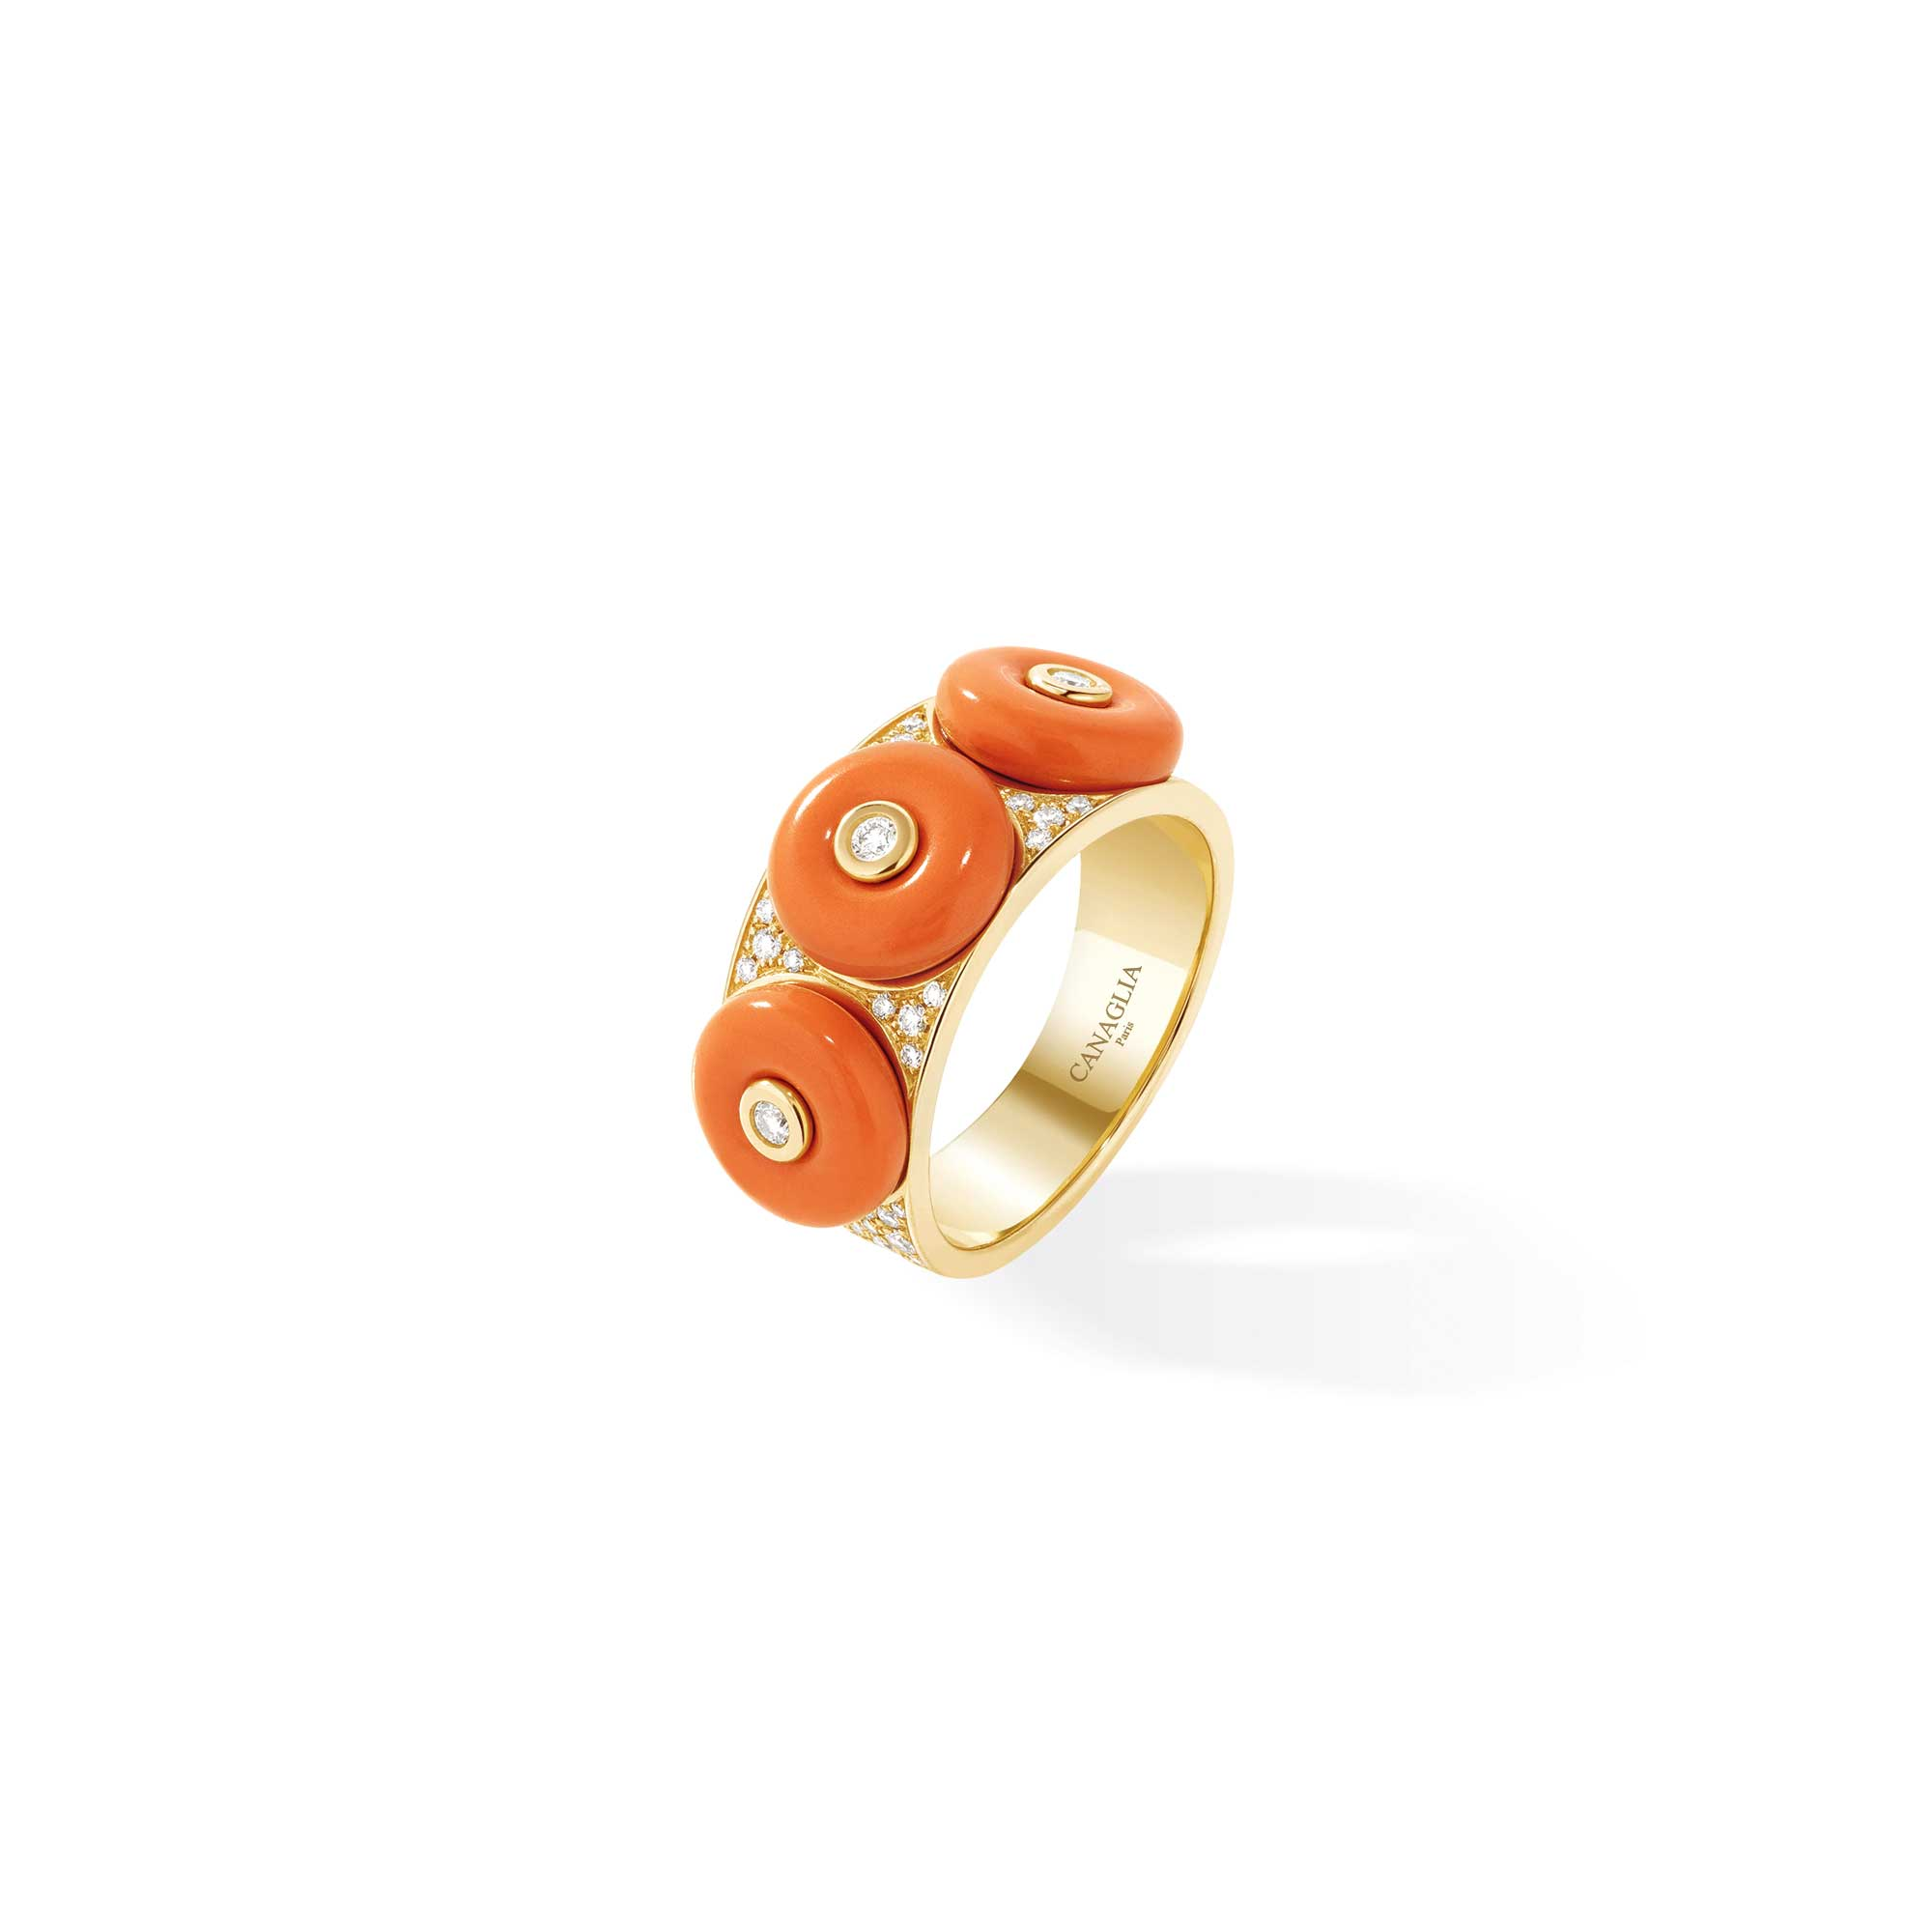 Yellow Gold Ring with Coral & Diamonds - Canaglia Paris-Milan Fine Jewelry